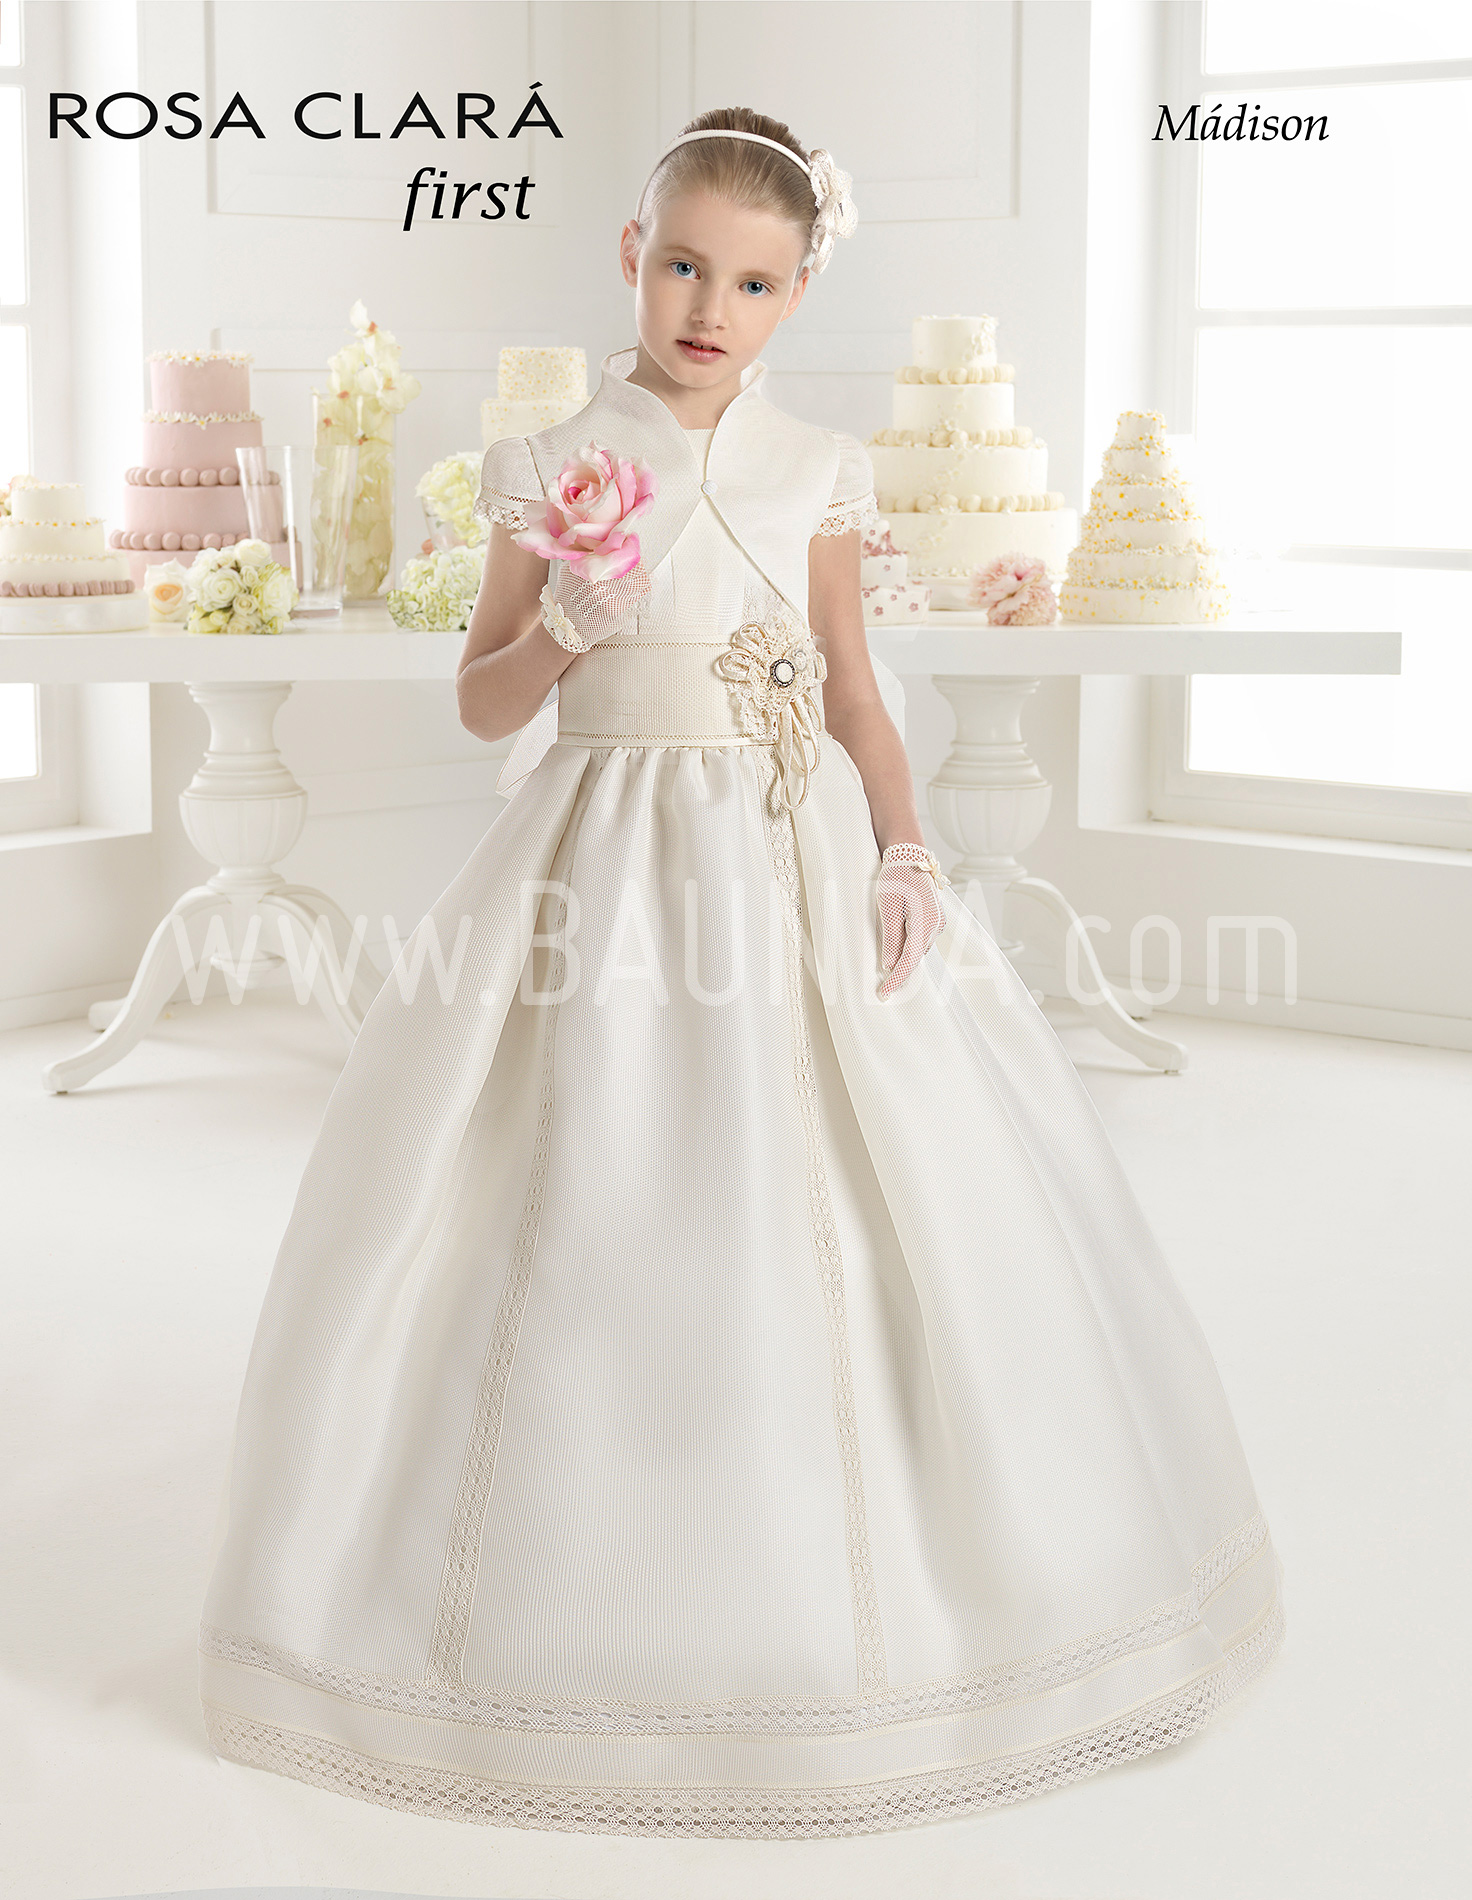 First communion dress rosa clara 2015